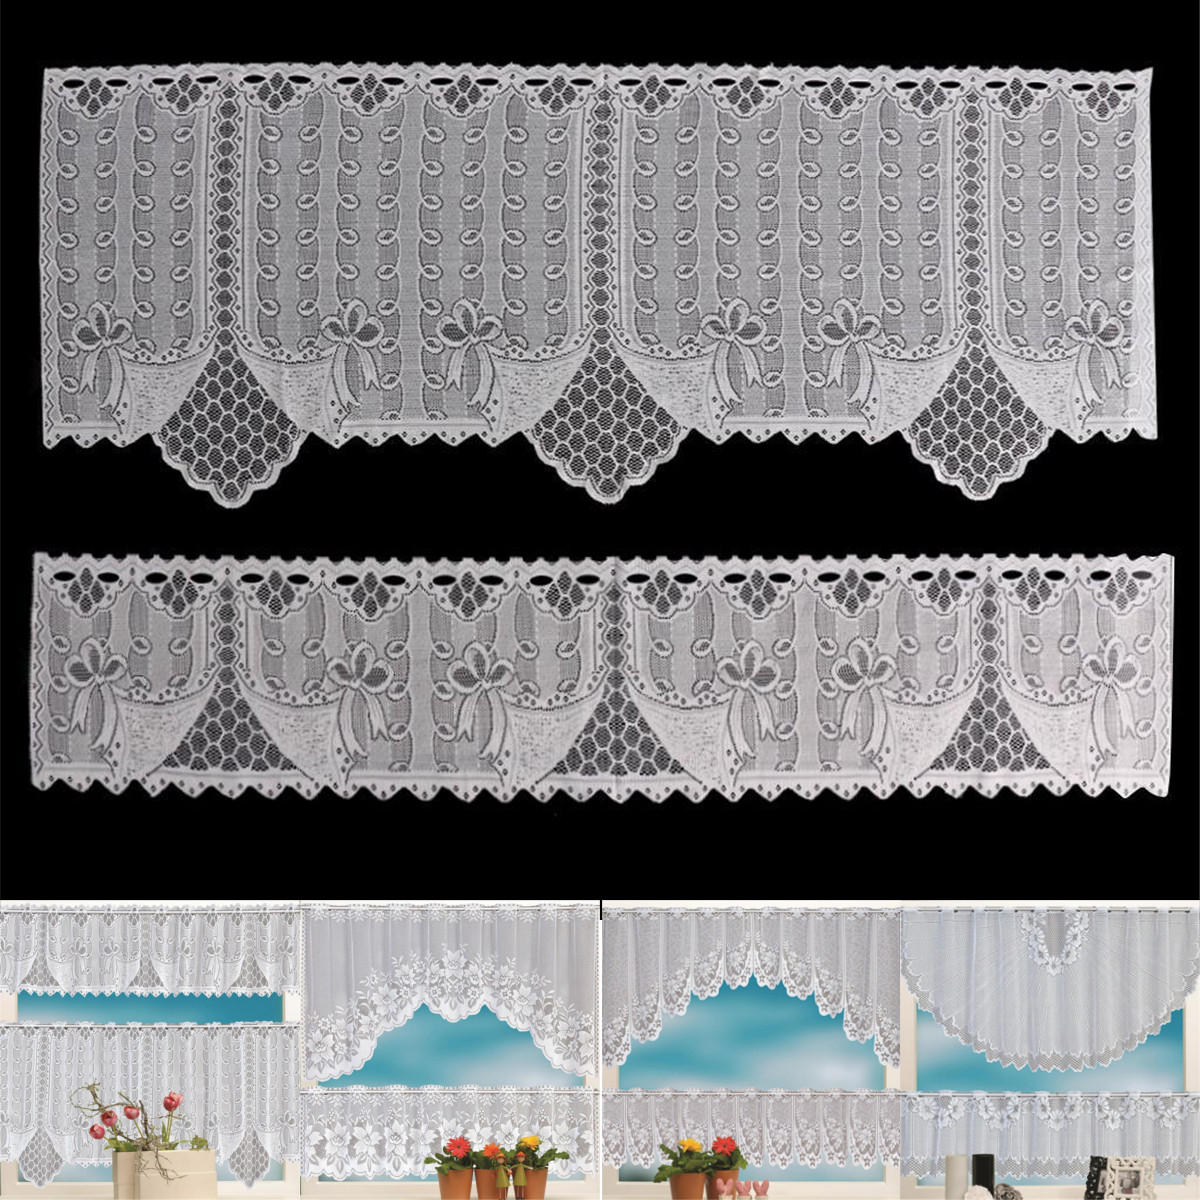 2PCS Lace Coffee Cafe Window Tier Curtains Kitchen Dining Room Home Decor Set COD